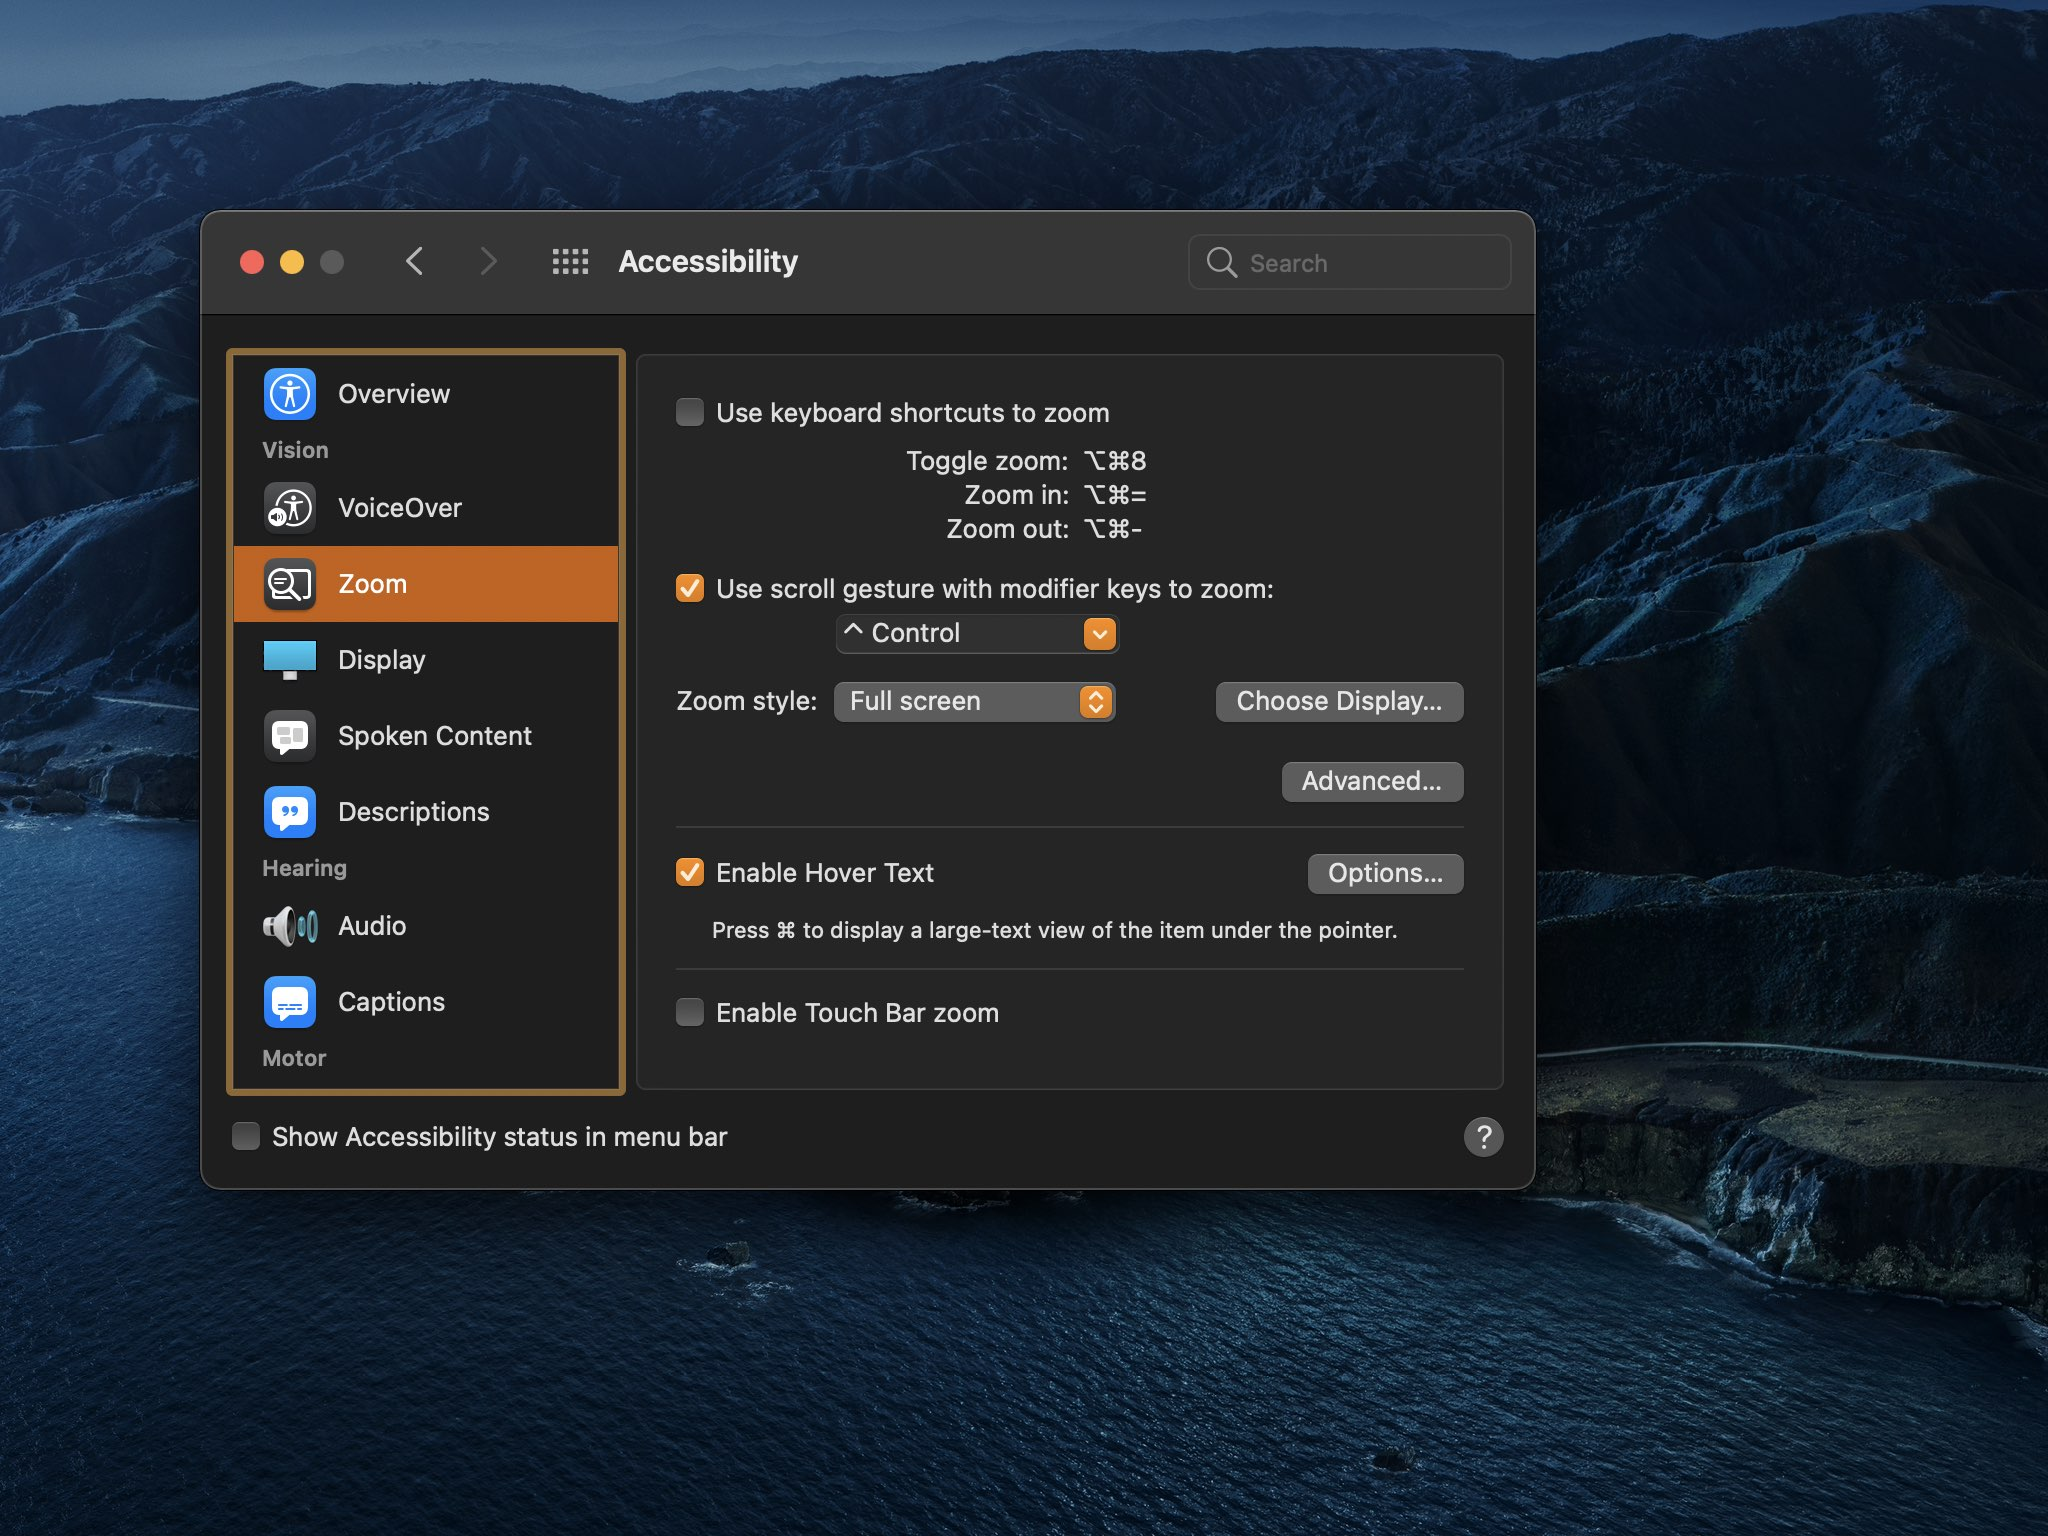 A screenshot showing the Mac Hover Text option enabled in the Accessibility preferences on macOS Big Sur